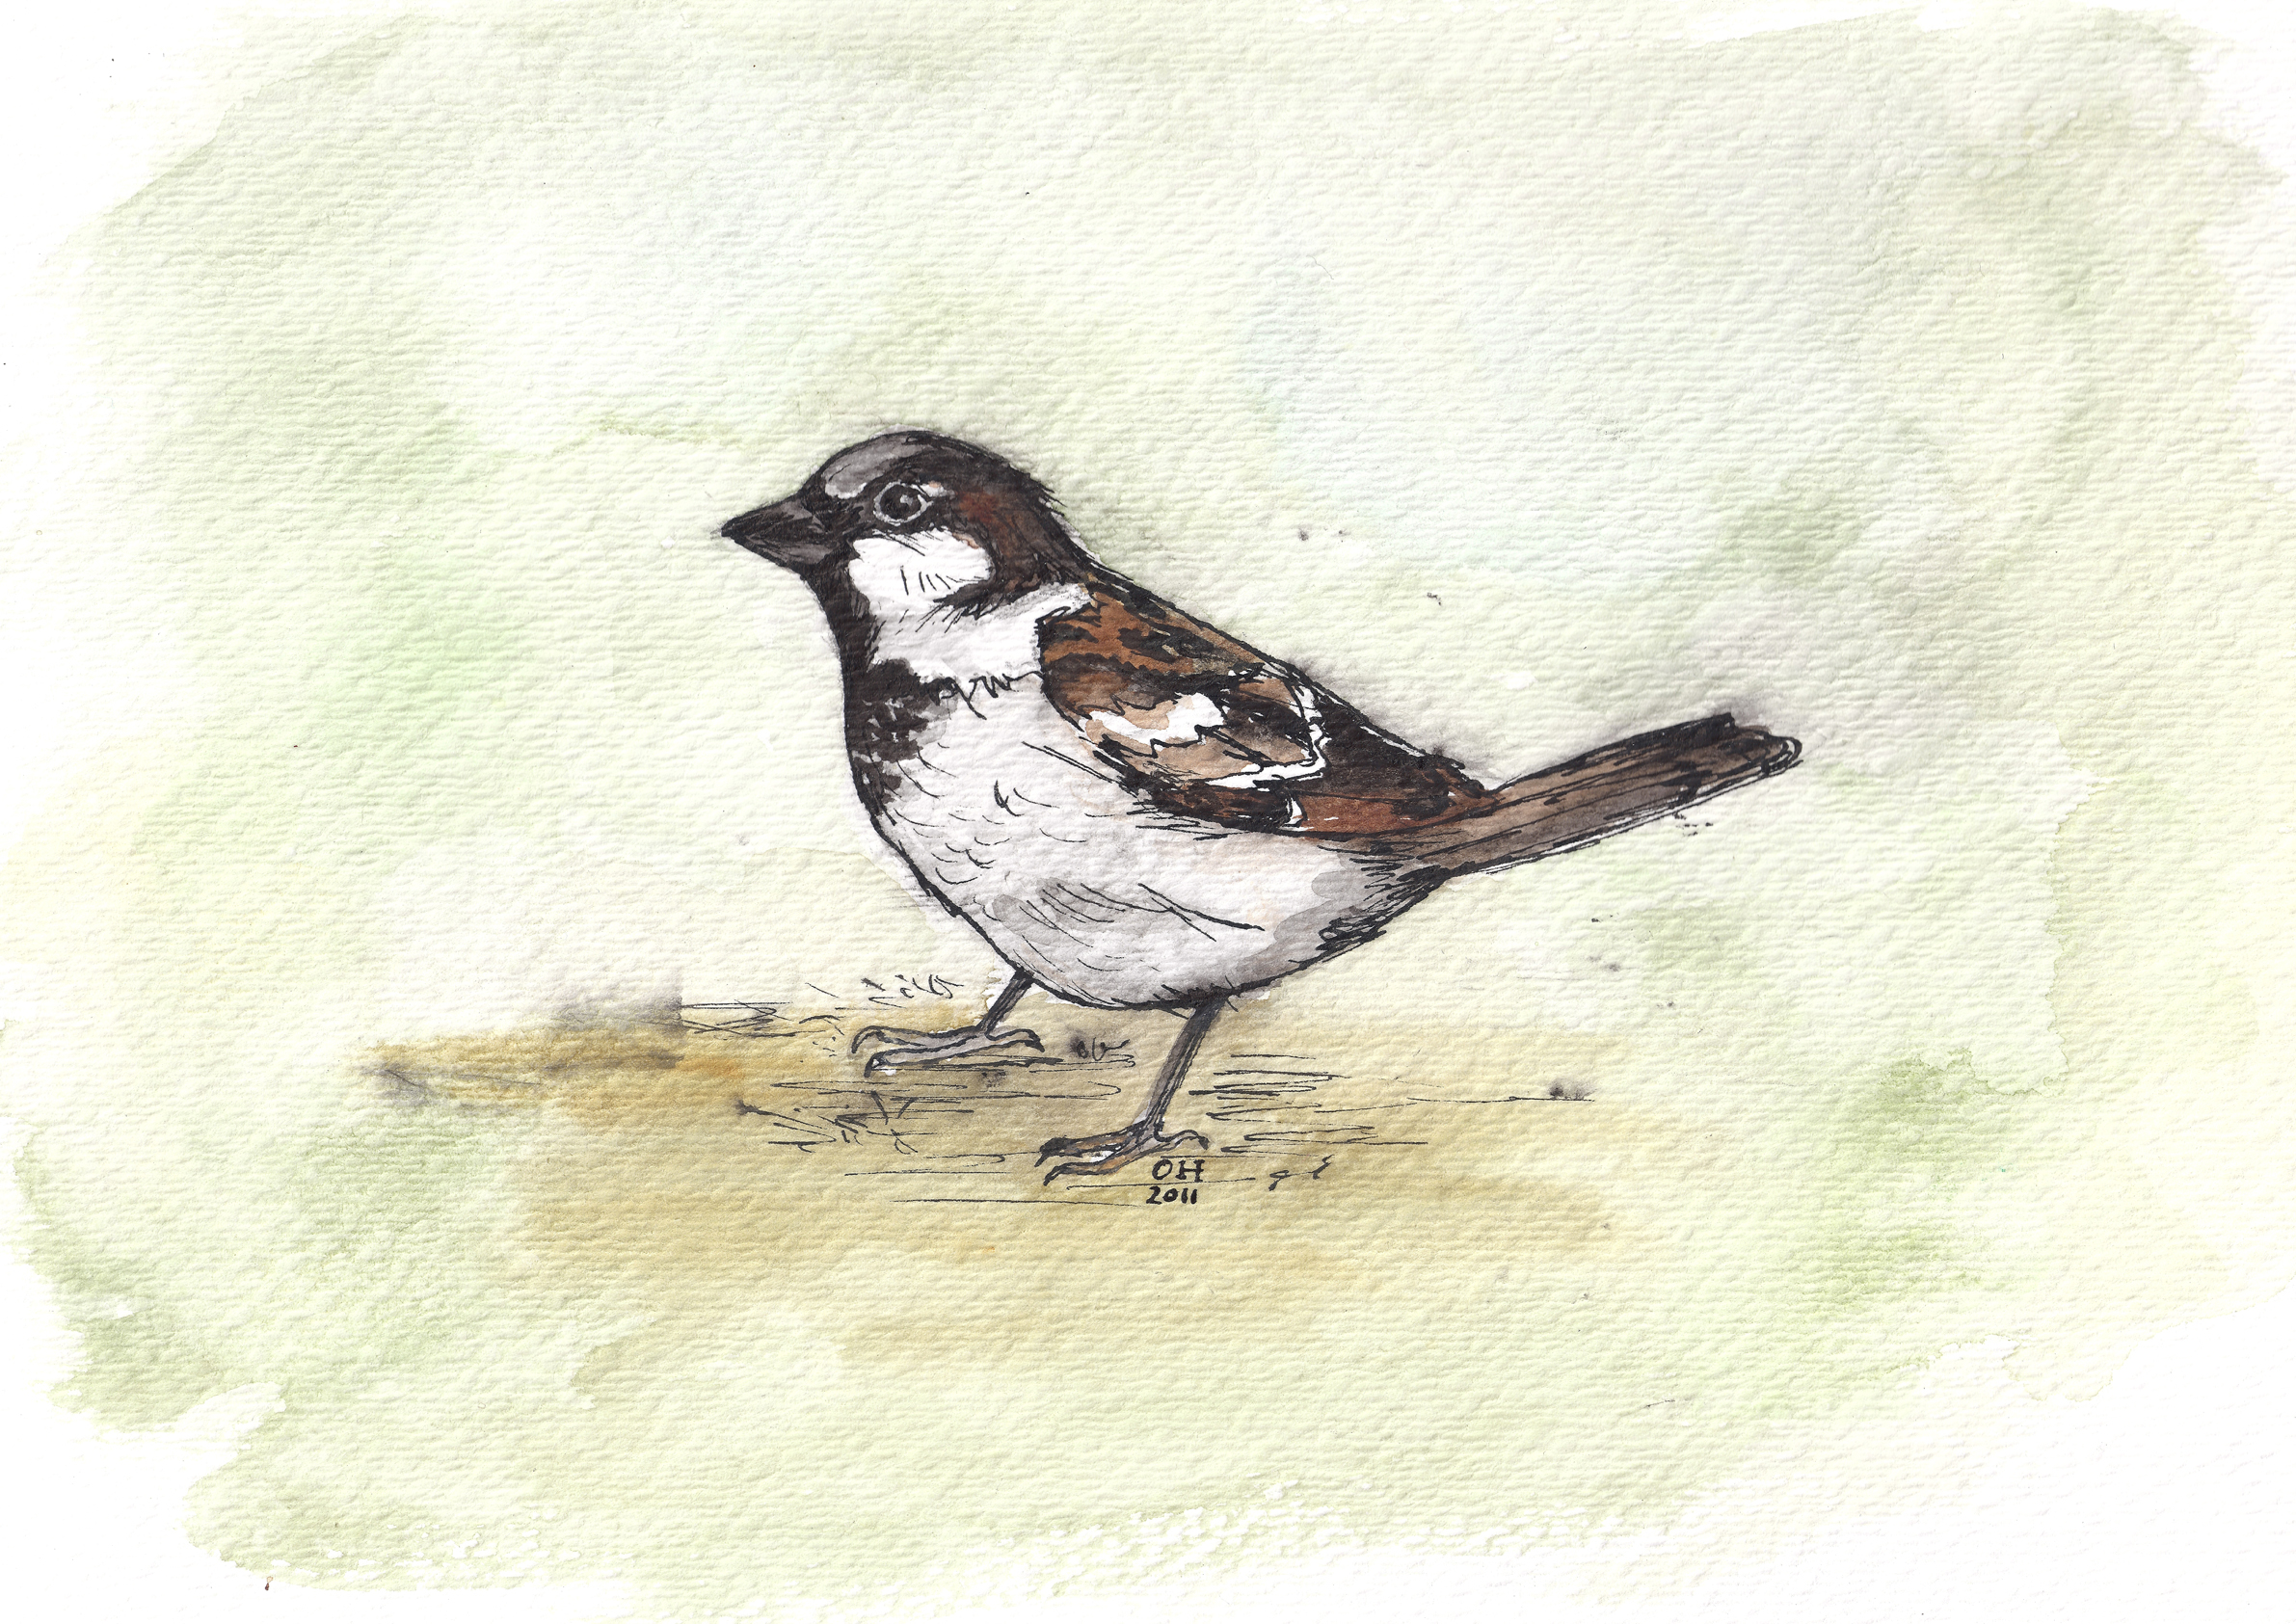 Sparrow 2011 Watercolor and India ink